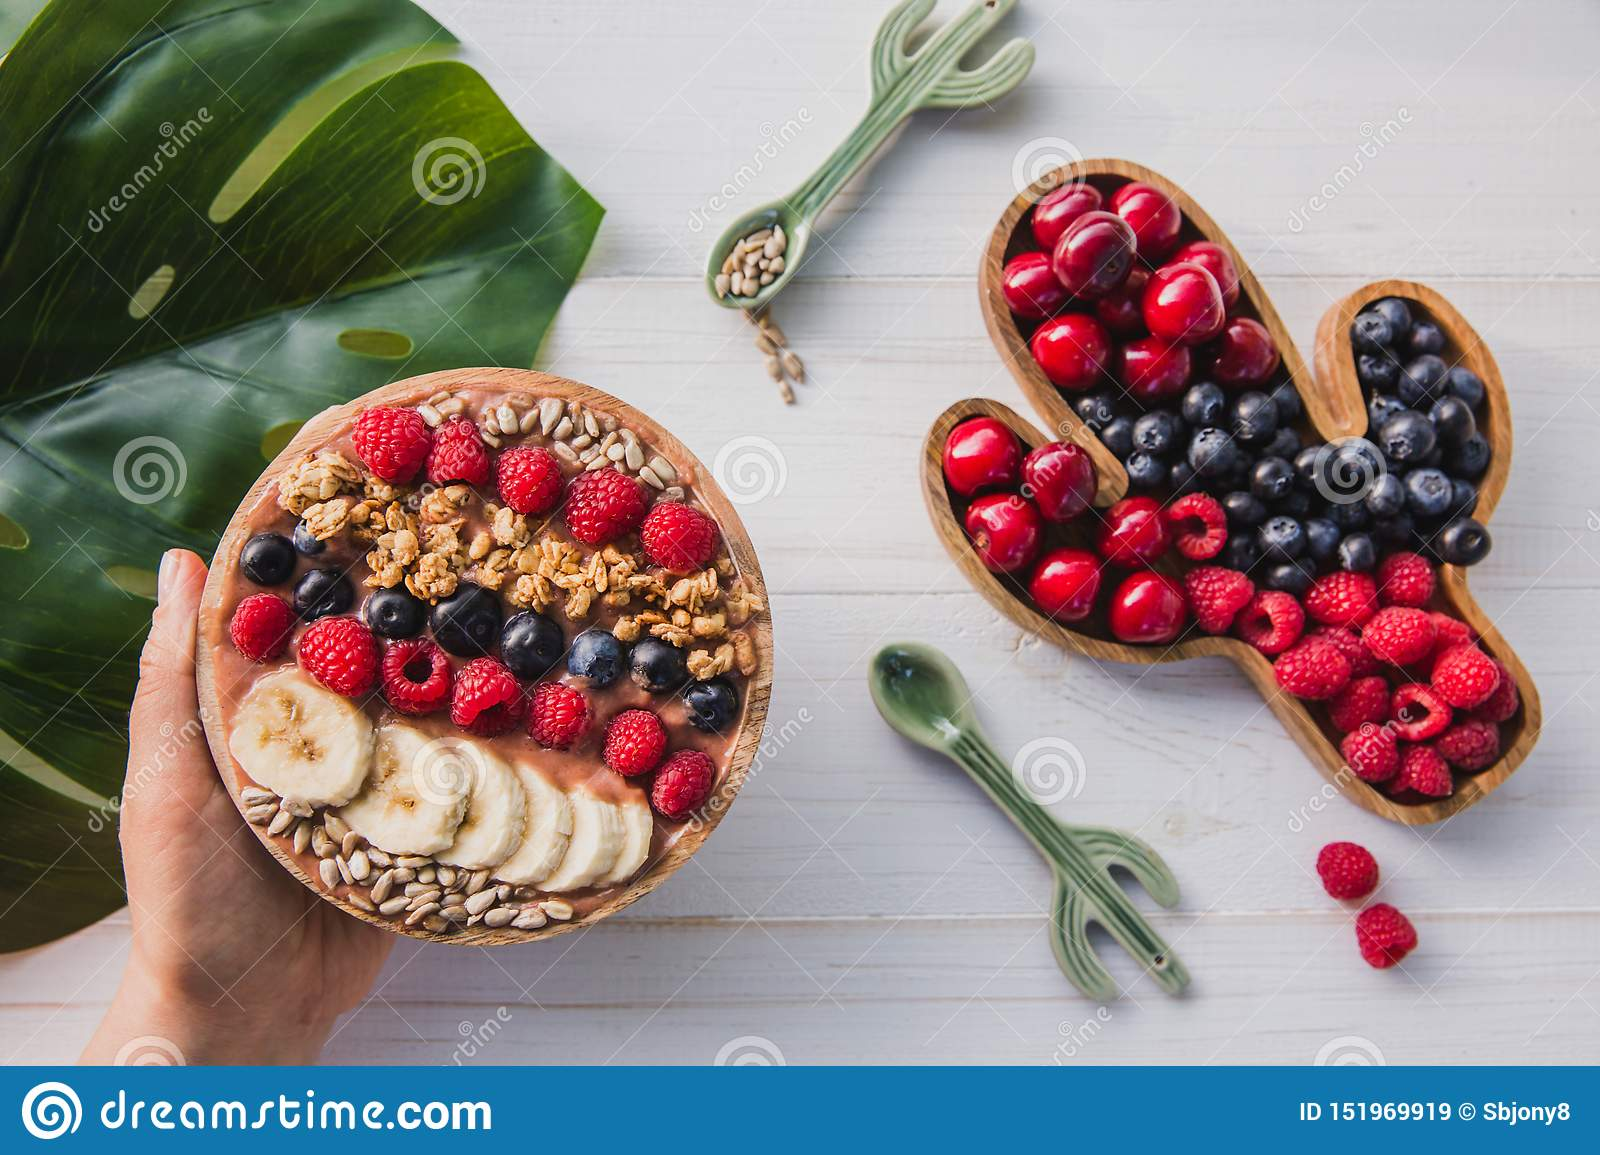 Acai smoothie, granola, seeds, fresh fruits in a wooden bowl in female hands with cactus spoon. Plate filled with